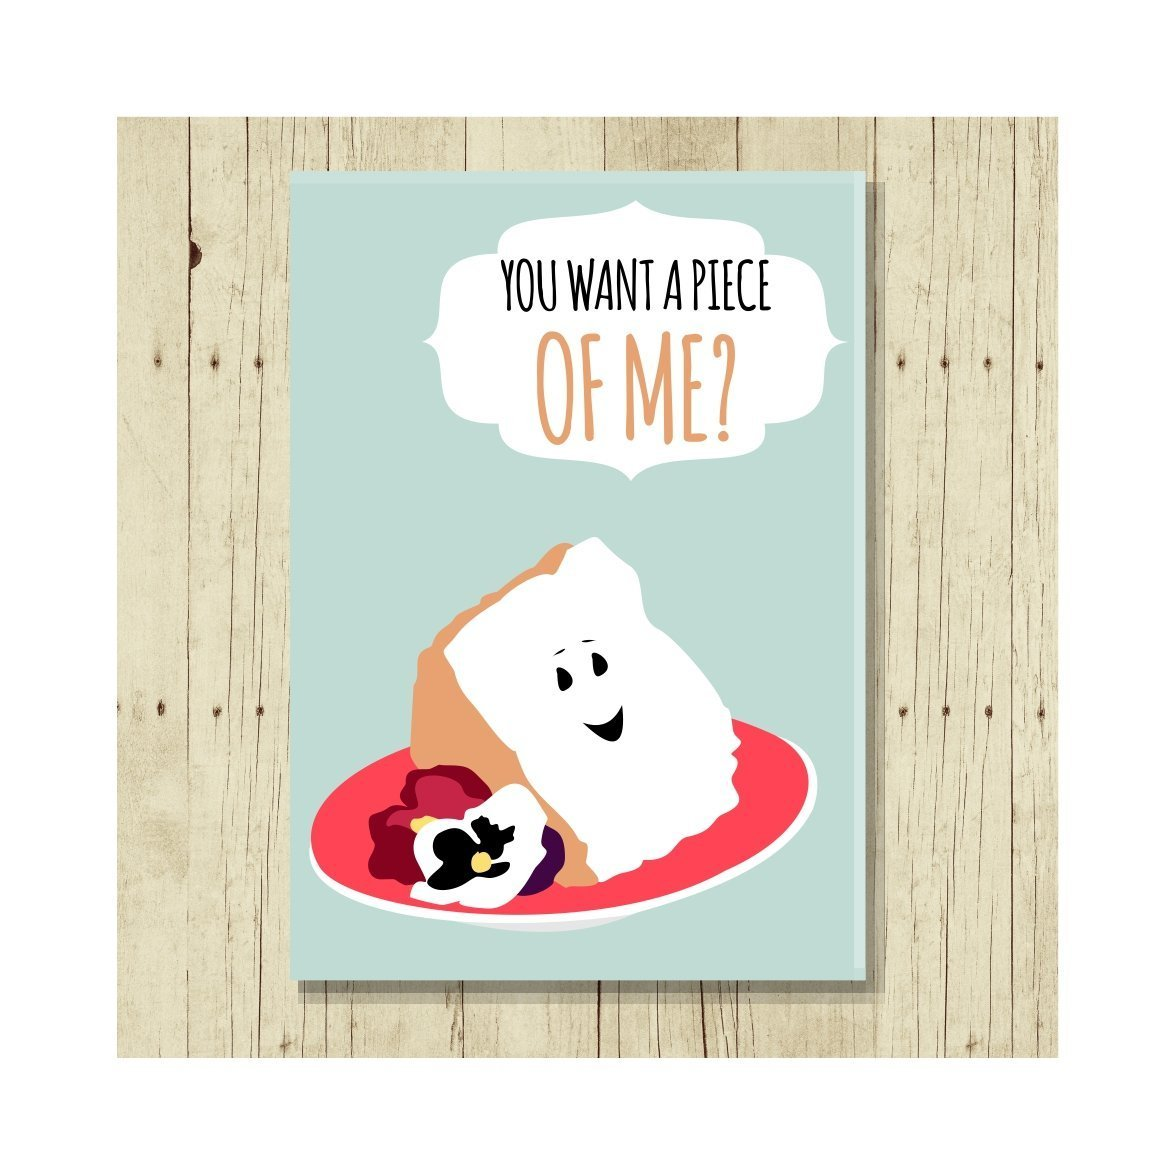 You Want a Piece of Me Magnet Puns Jumbo Size 2.5 x 3.5